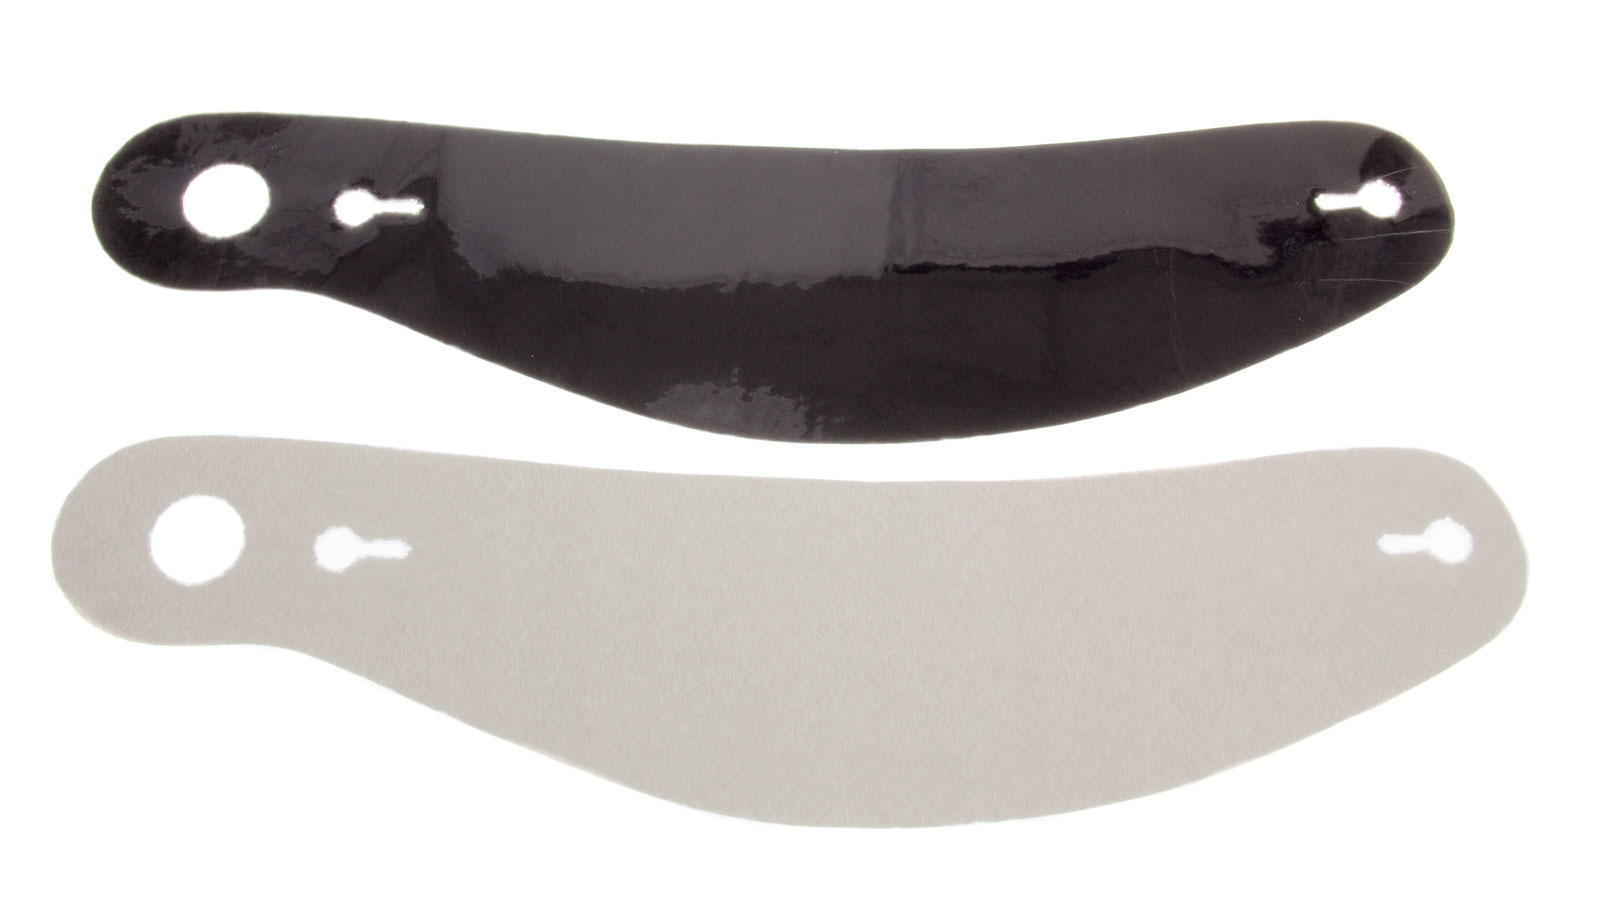 Ultra Shield S22 Helmet Shield Tear Off, 2 mm Thick, 12-3/8 in Center to Center, Curved, Plastic, Smoked, Bell 281/288, Set of 5